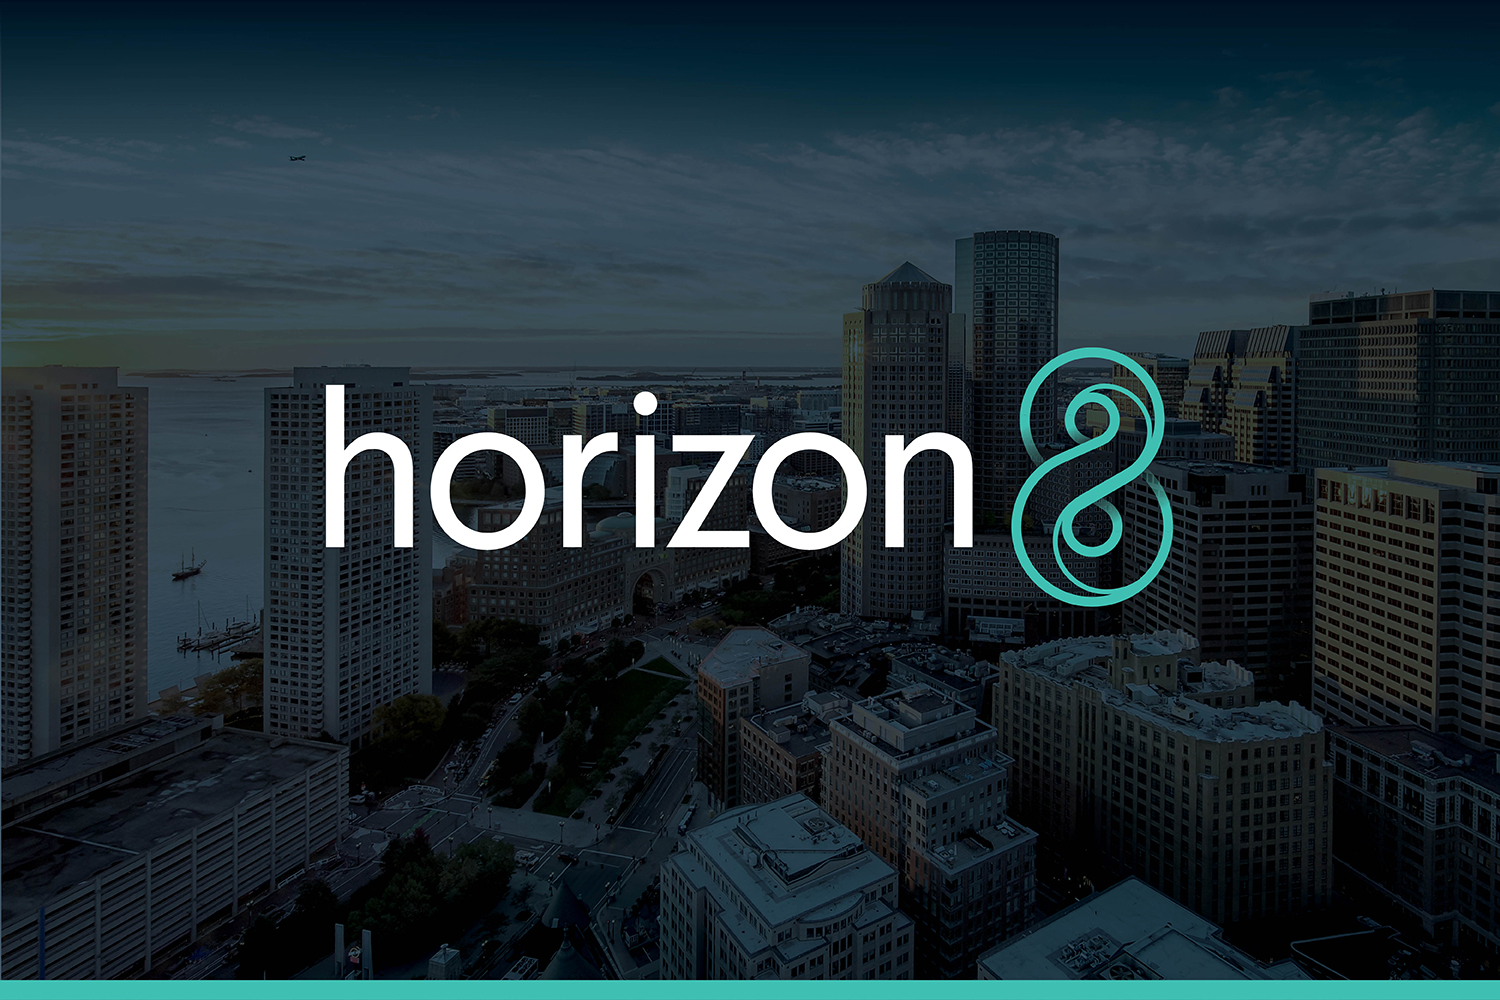 Cover image: Horizon8 – Brand Name and Identity